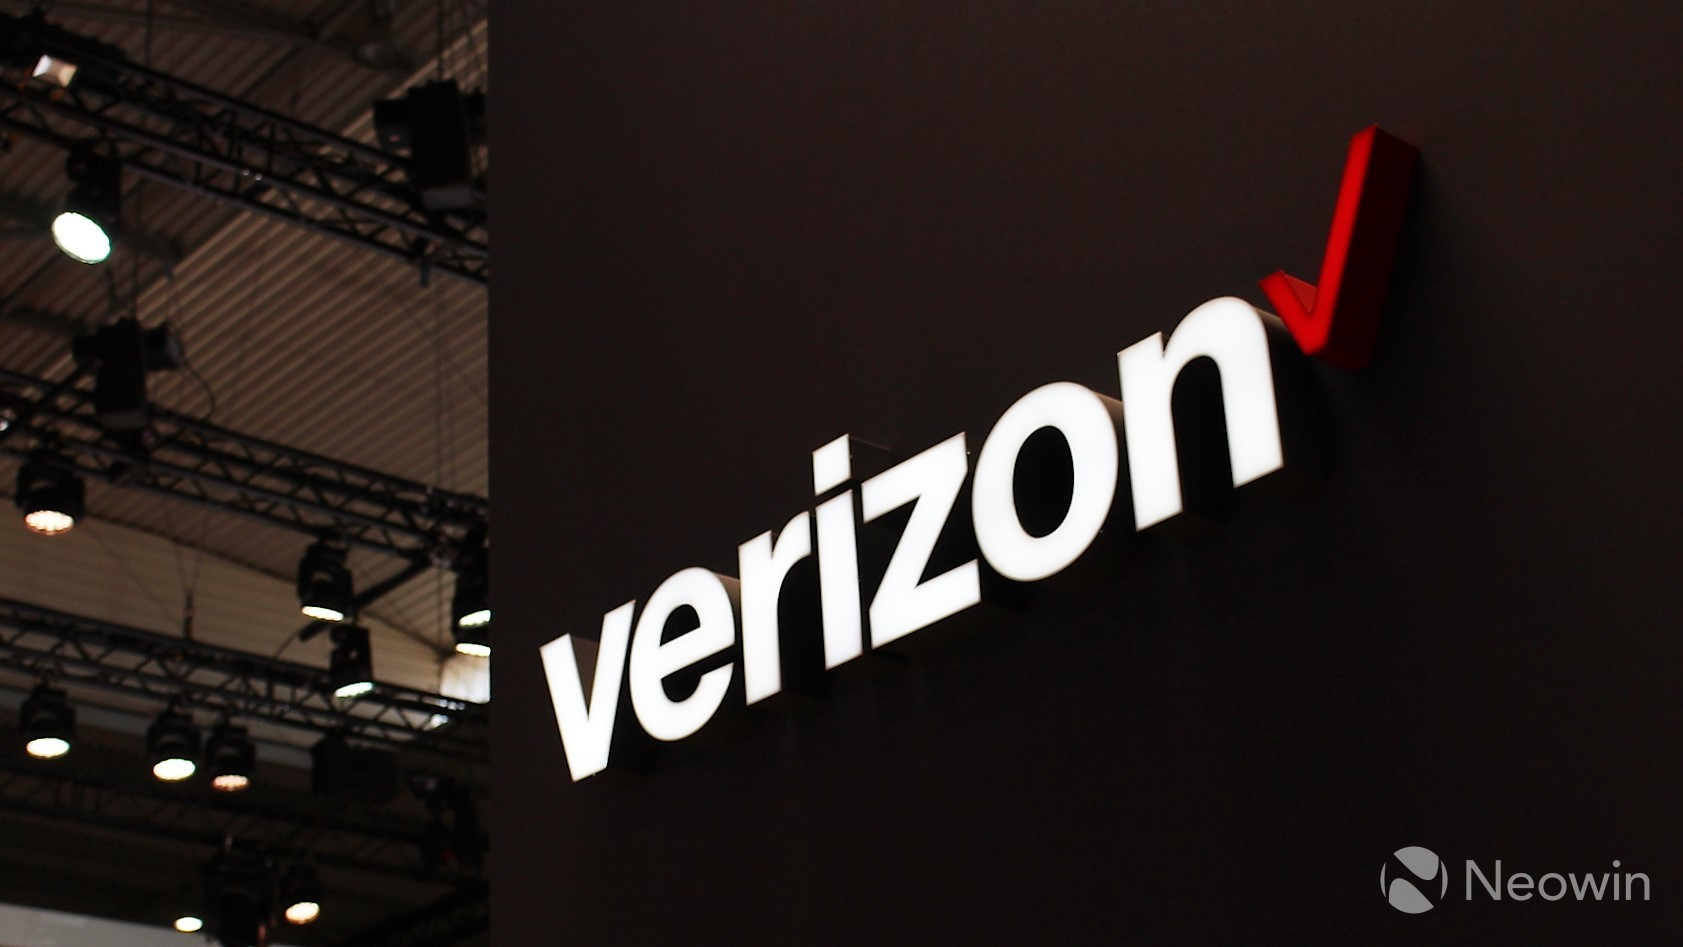 Verizon slowed down firefighters' internet during California wildfires: court filing